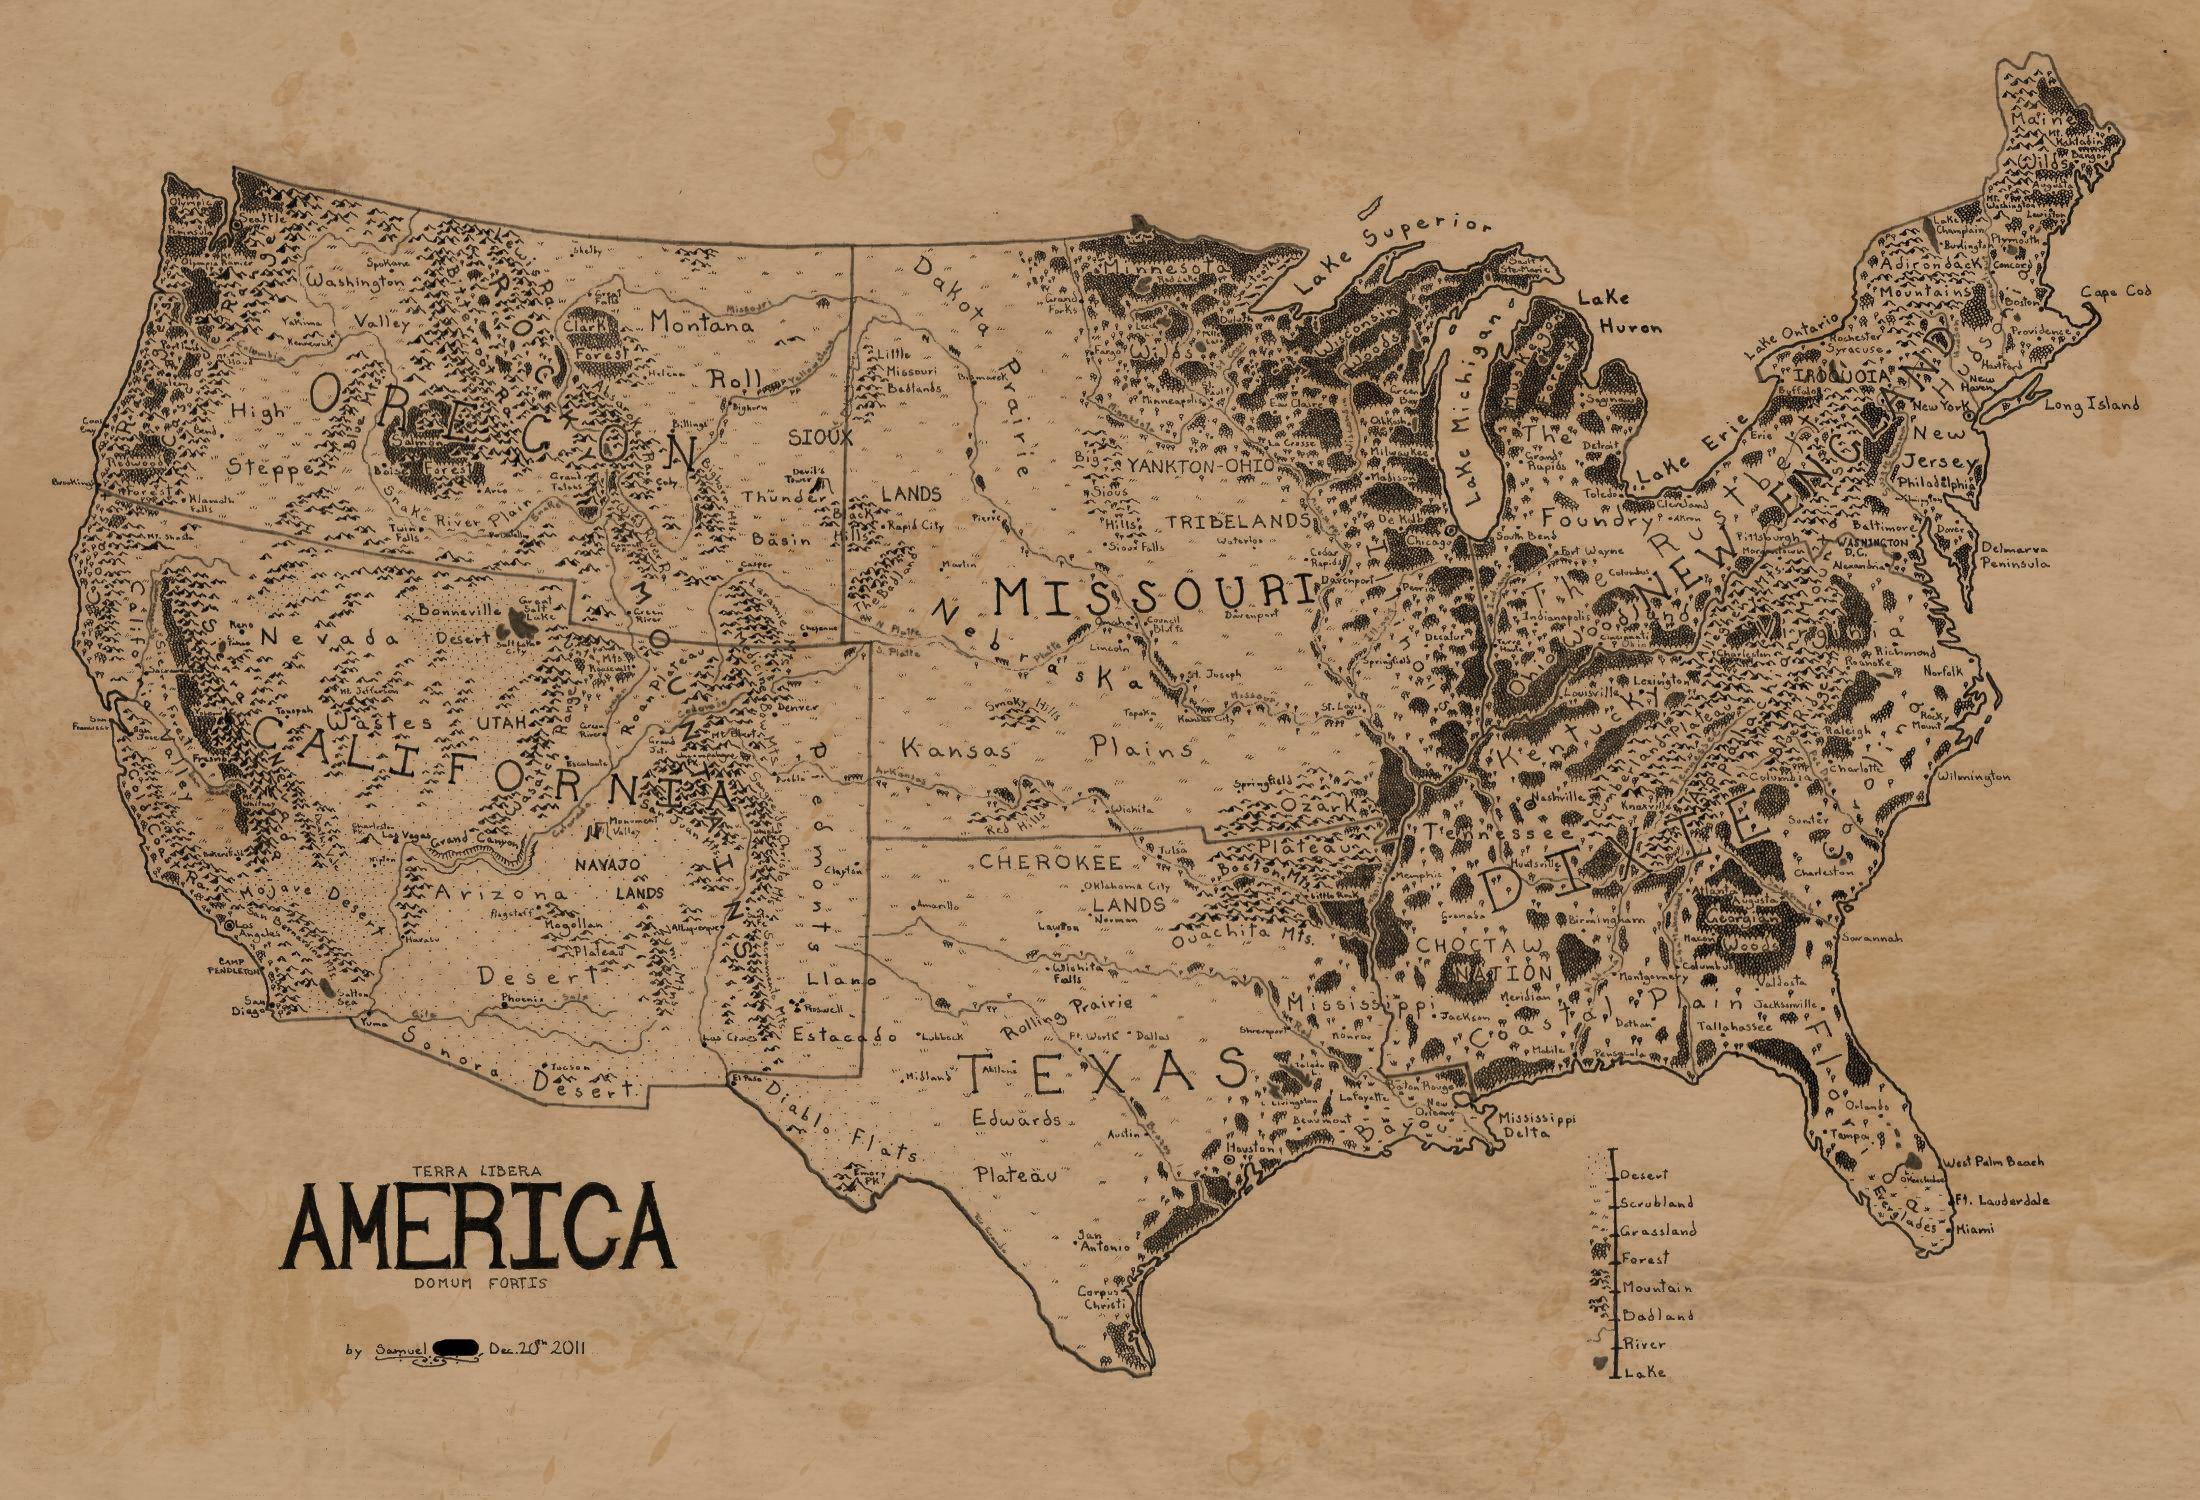 2200x1500 A Map Of The United States, Drawn In The Style Of Lord Of The Rings